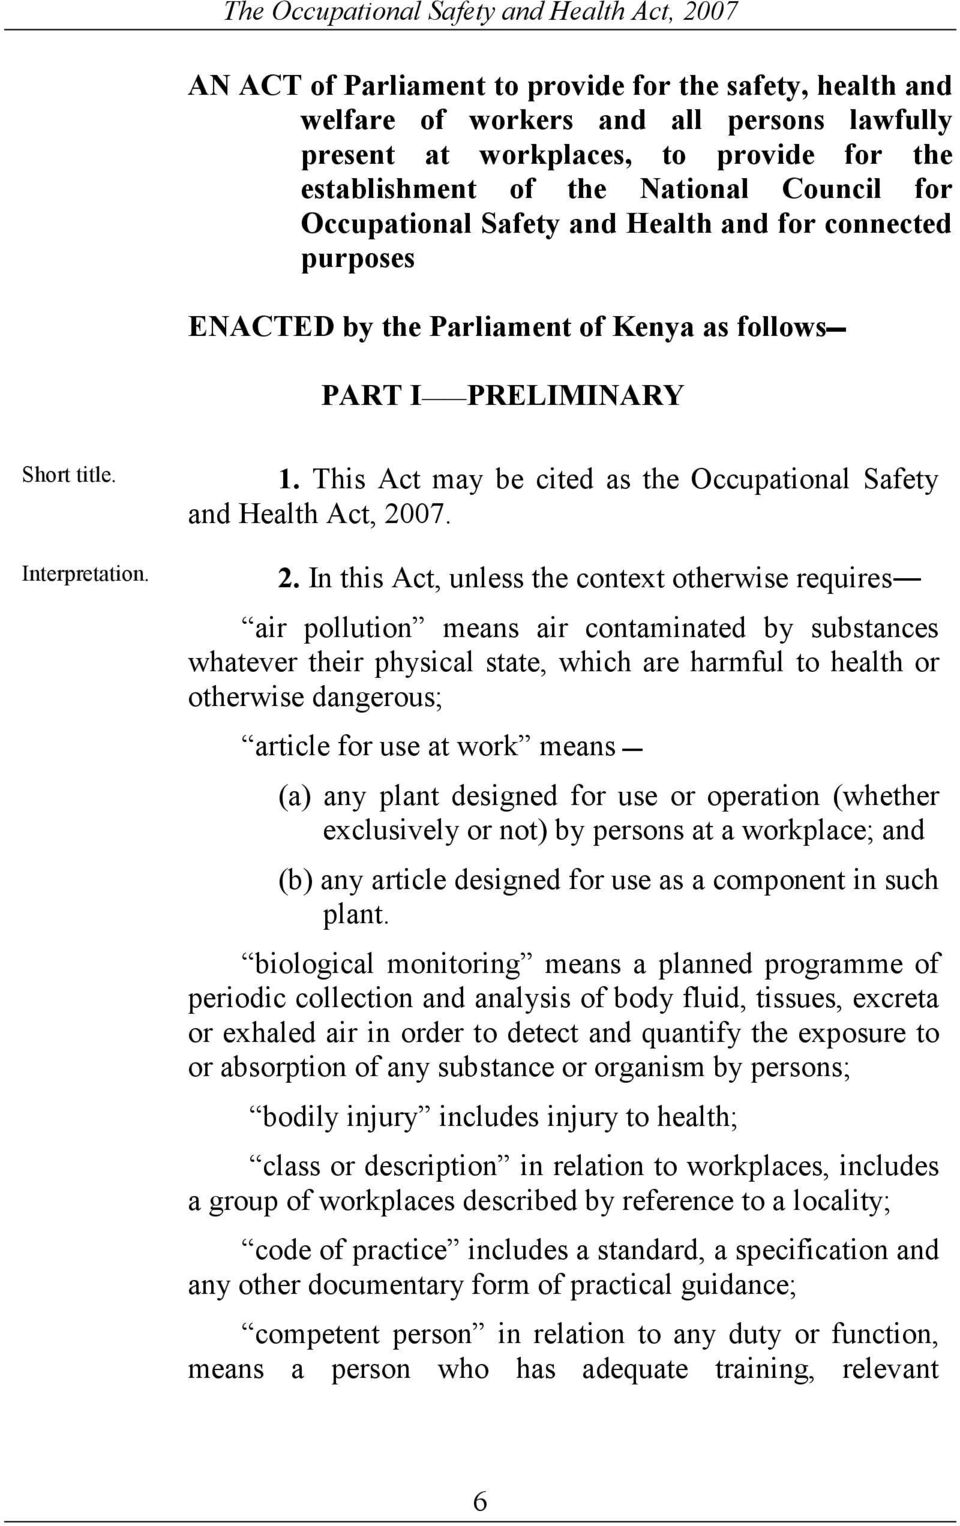 This Act may be cited as the Occupational Safety and Health Act, 20